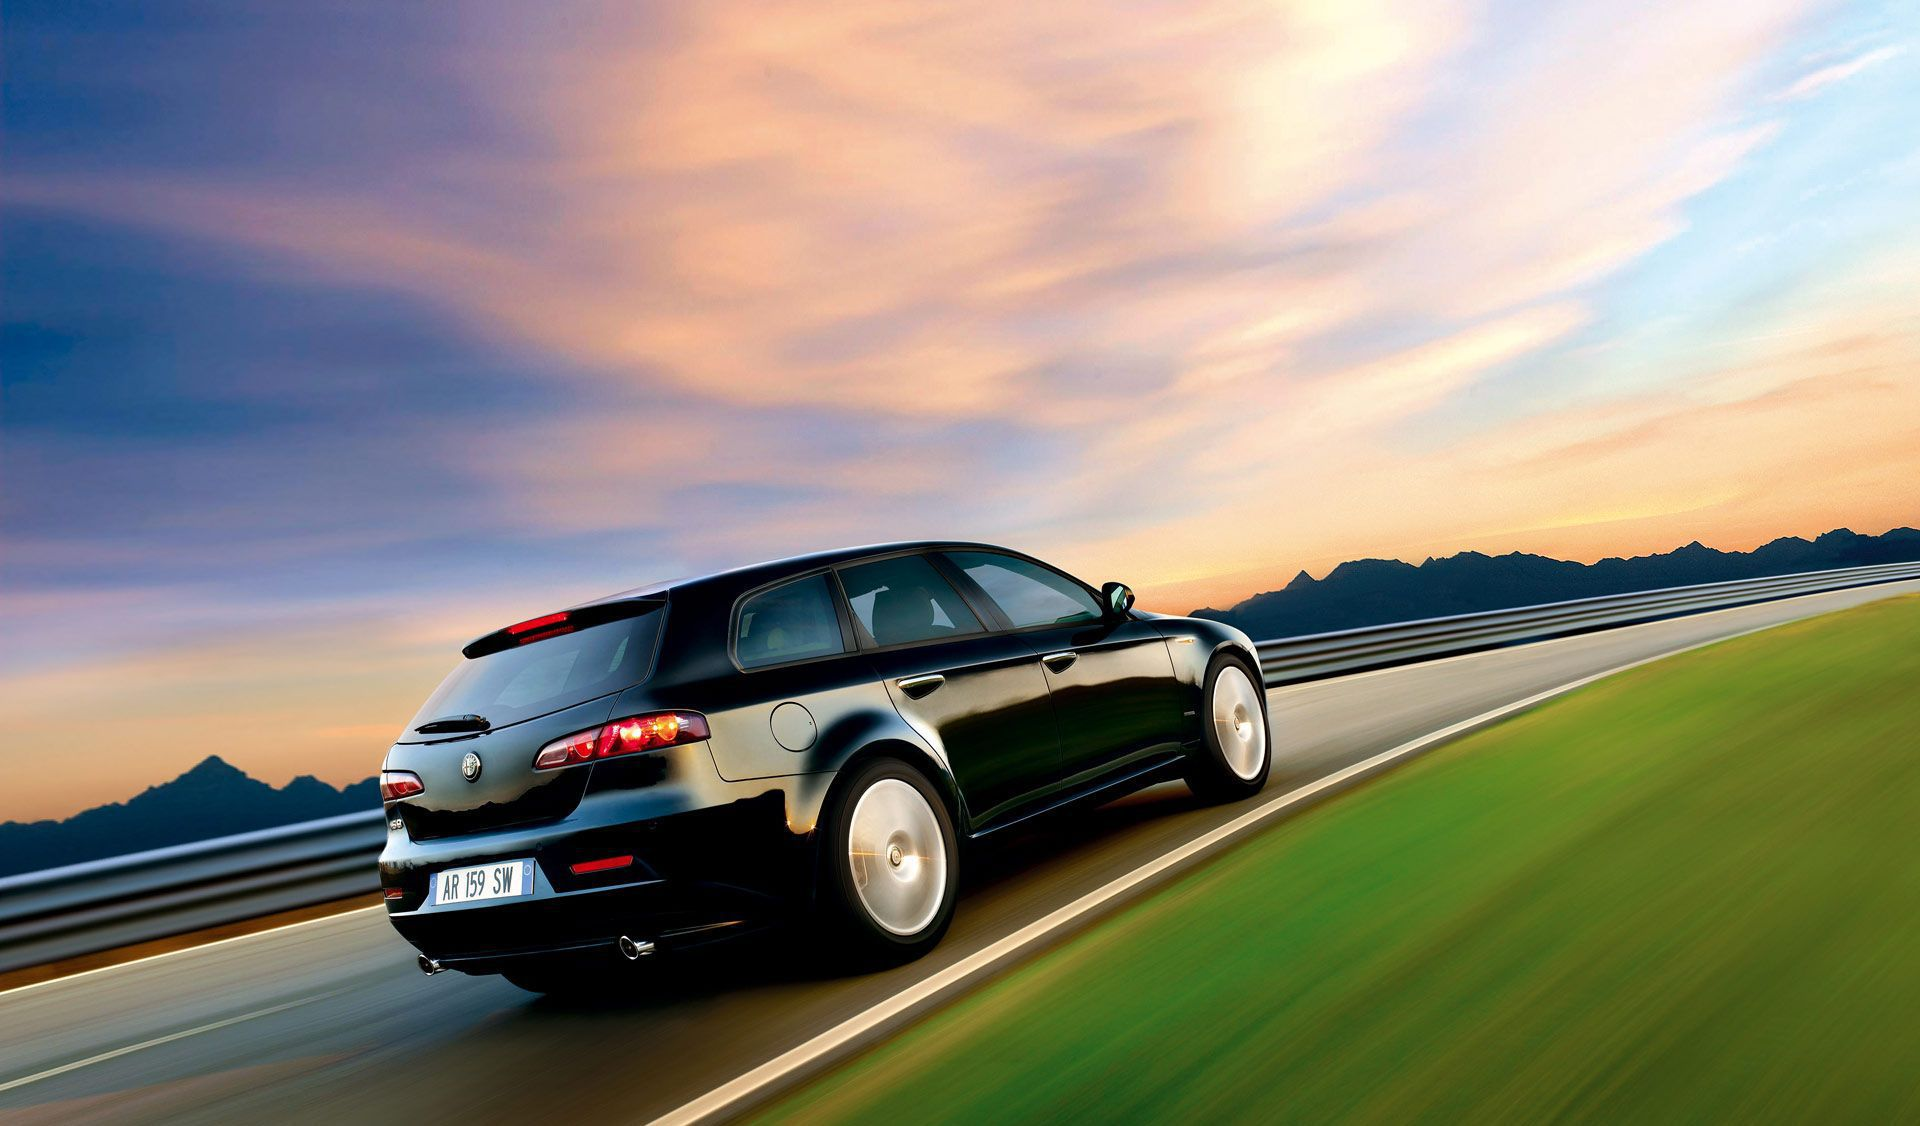 Alfa Romeo 159 Wallpapers HD